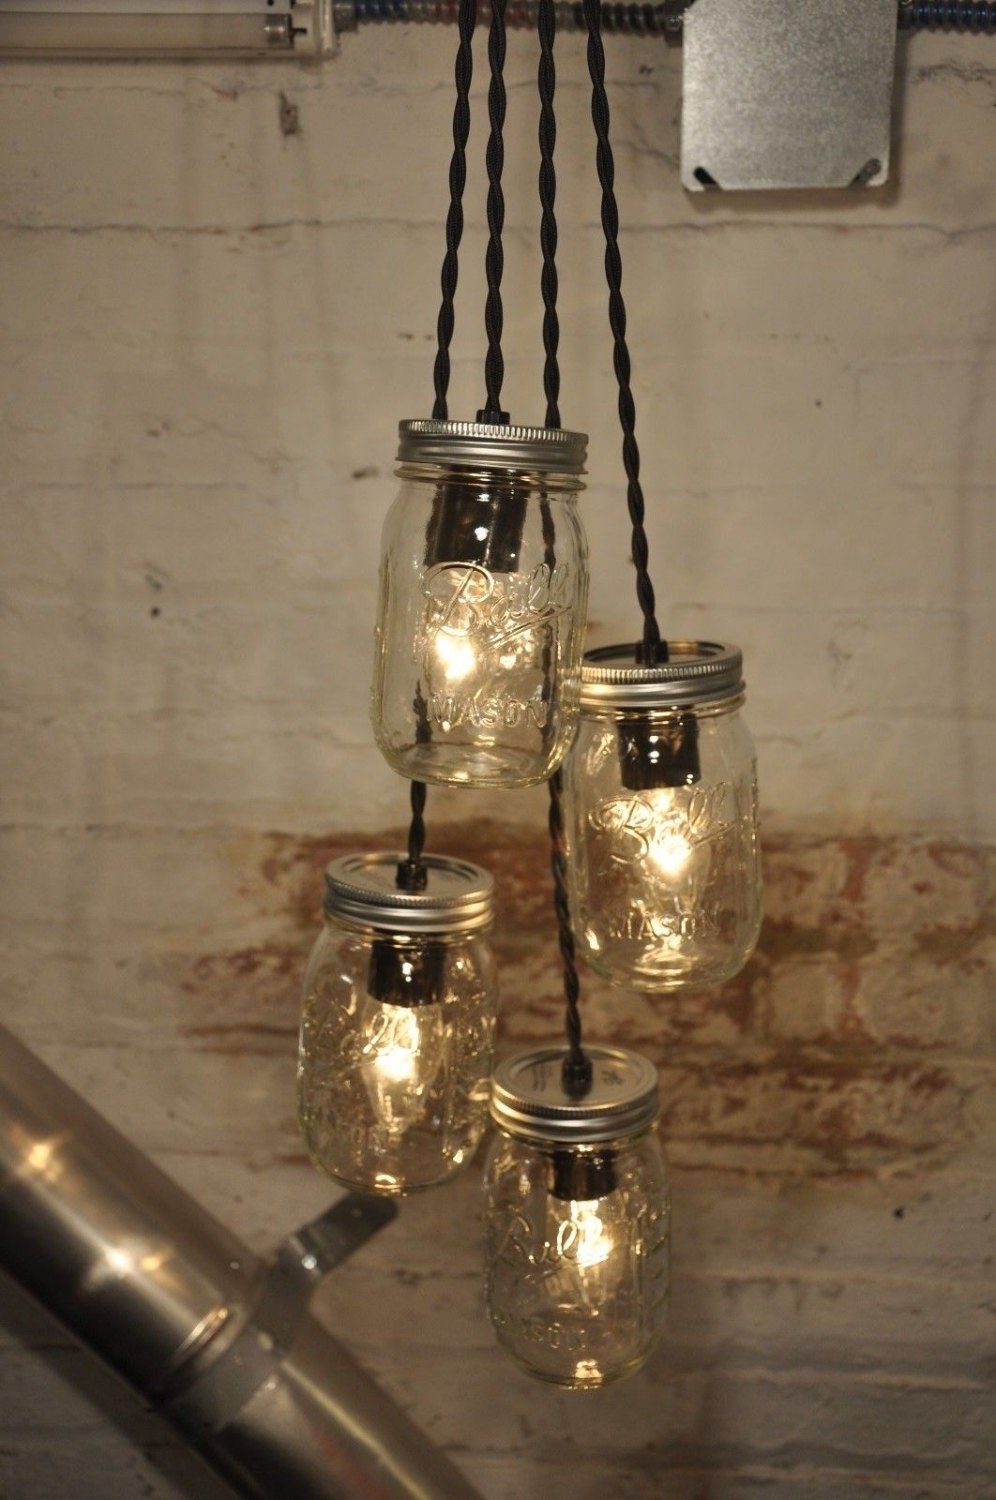 & 4 Mason Jar Chandelier Pendant Light Fixture Beautiful Rustic Industrial